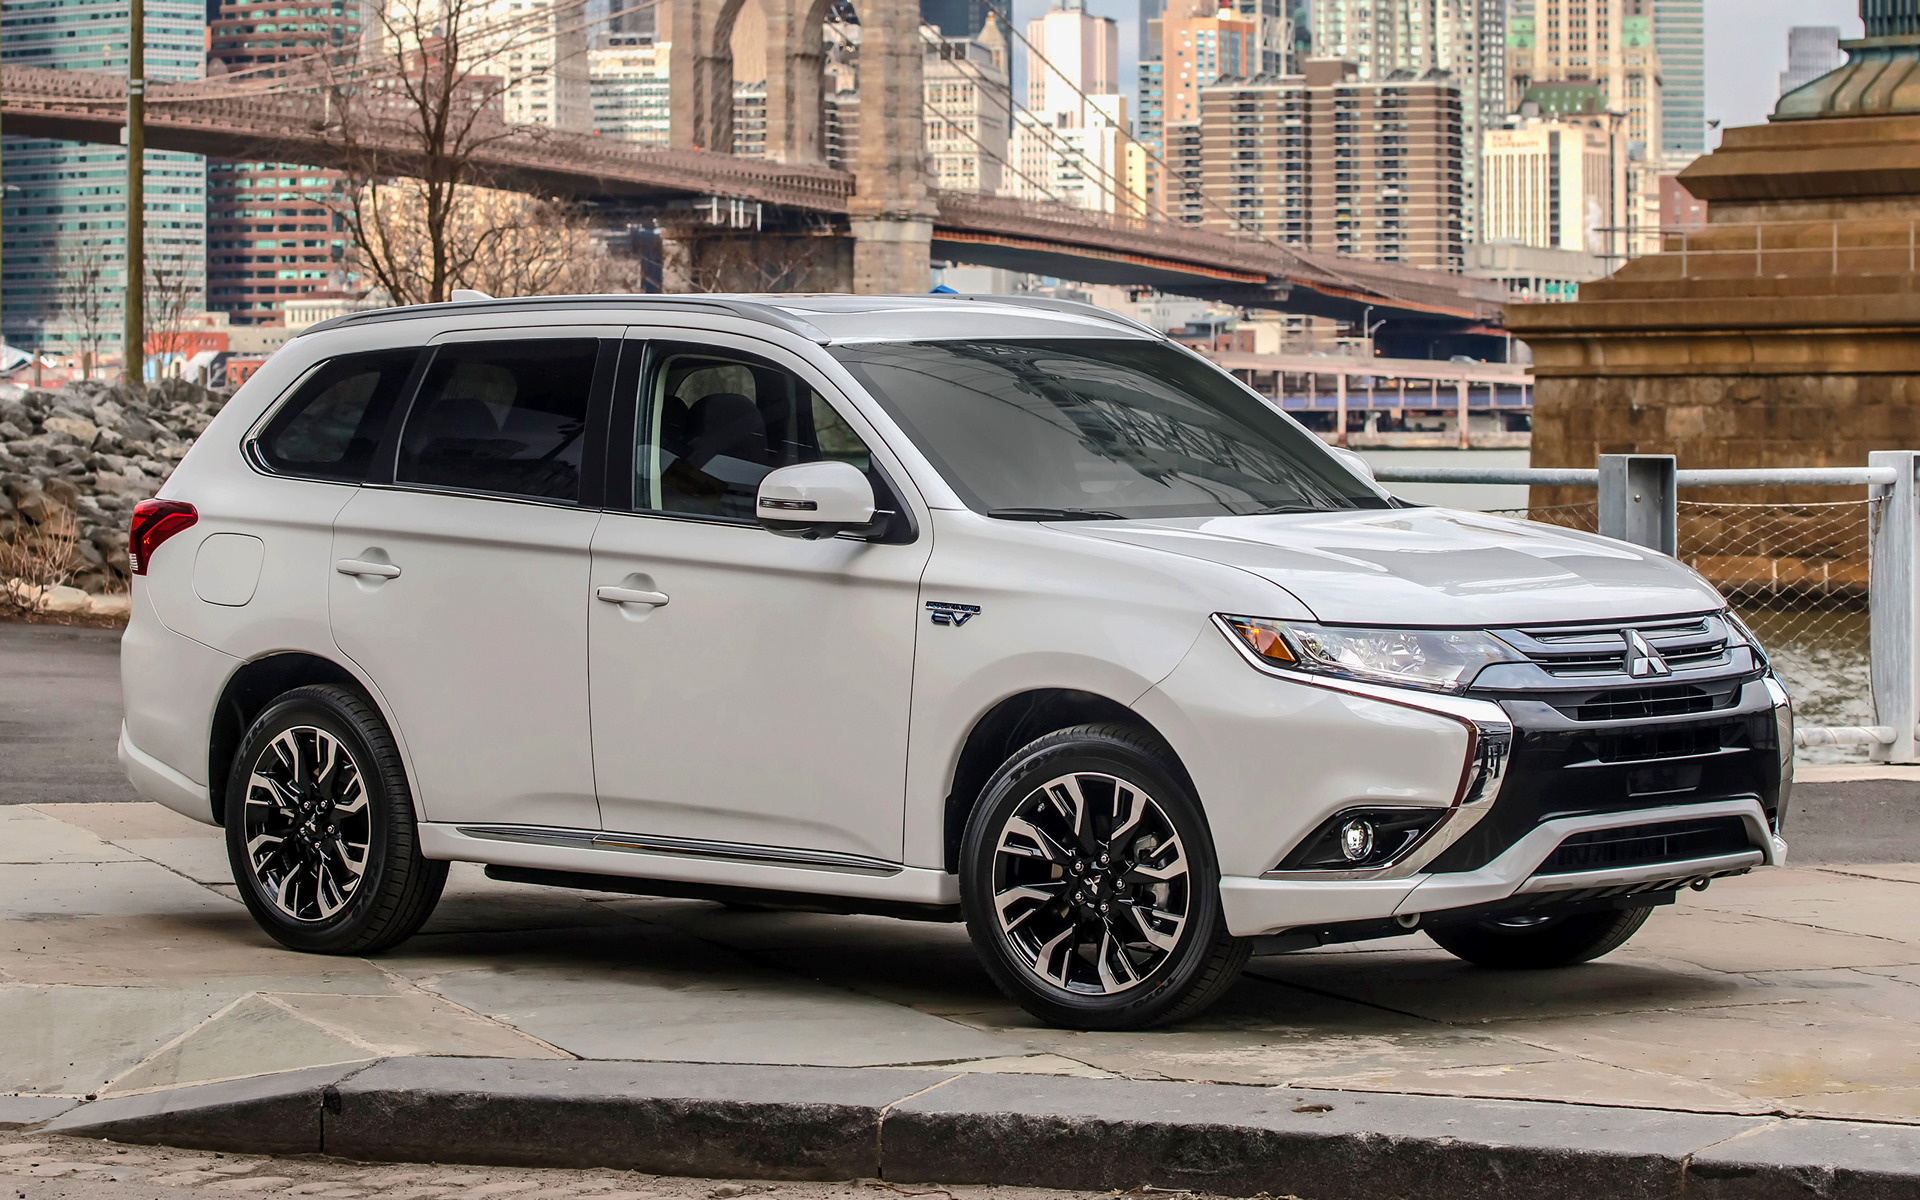 Genesis Car Wallpaper Mitsubishi Outlander Phev 2017 Us Wallpapers And Hd